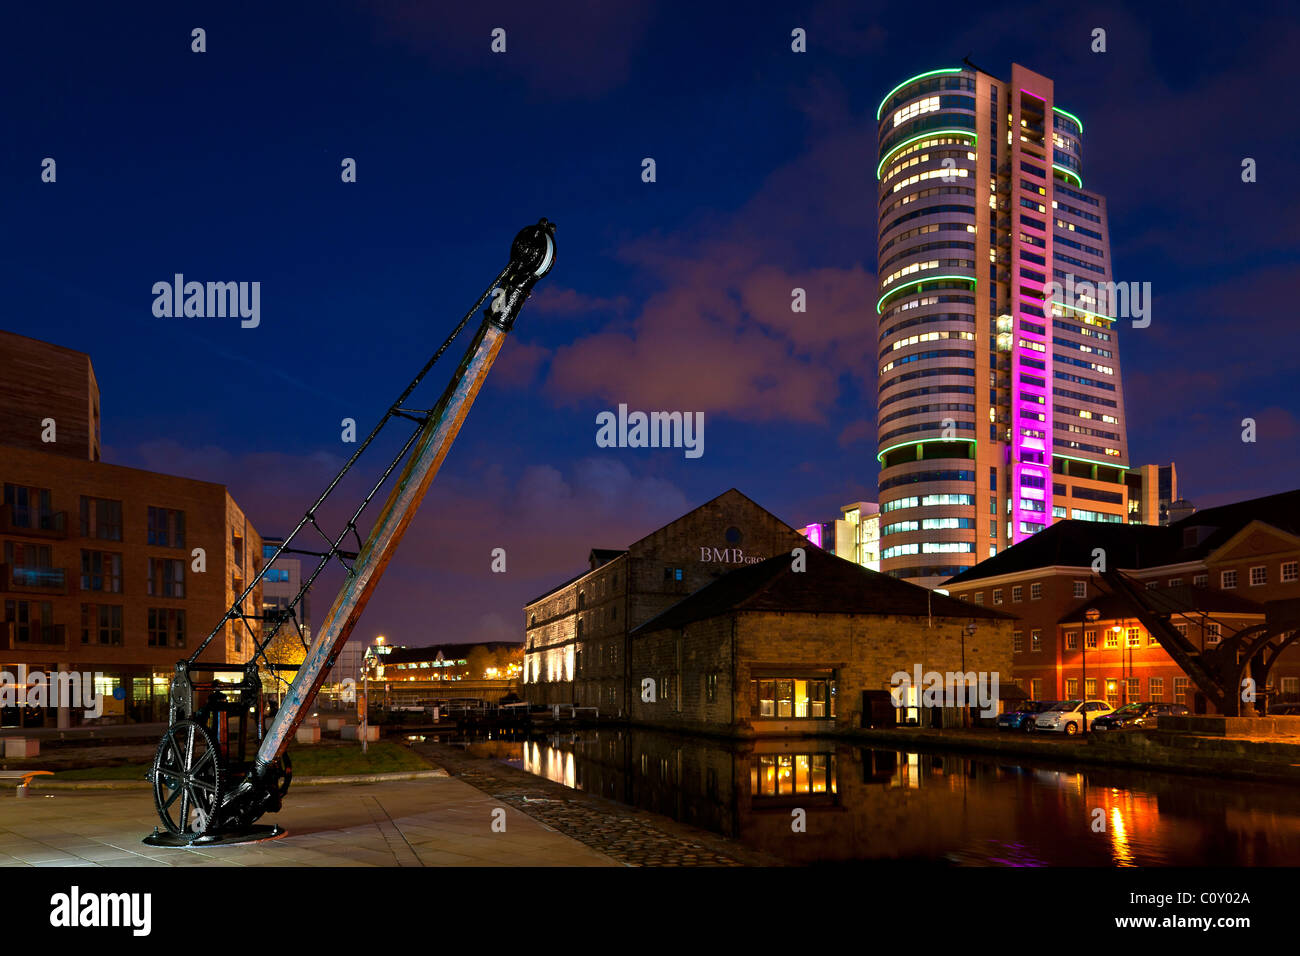 Bridgewater Place in Leeds city centre at night. Stock Photo